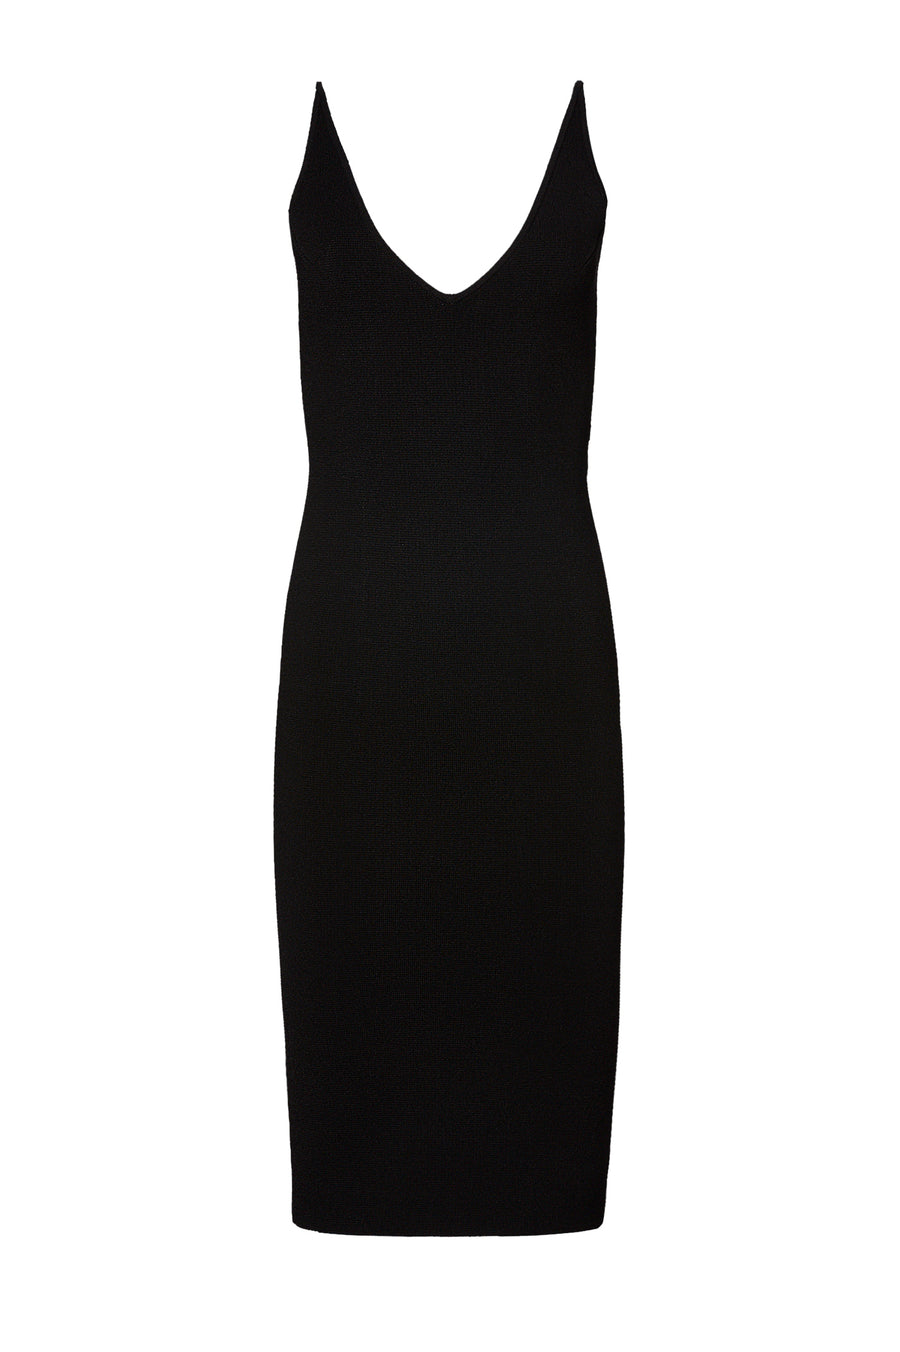 CREPE KNIT STRAPPY DRESS, BLACK color